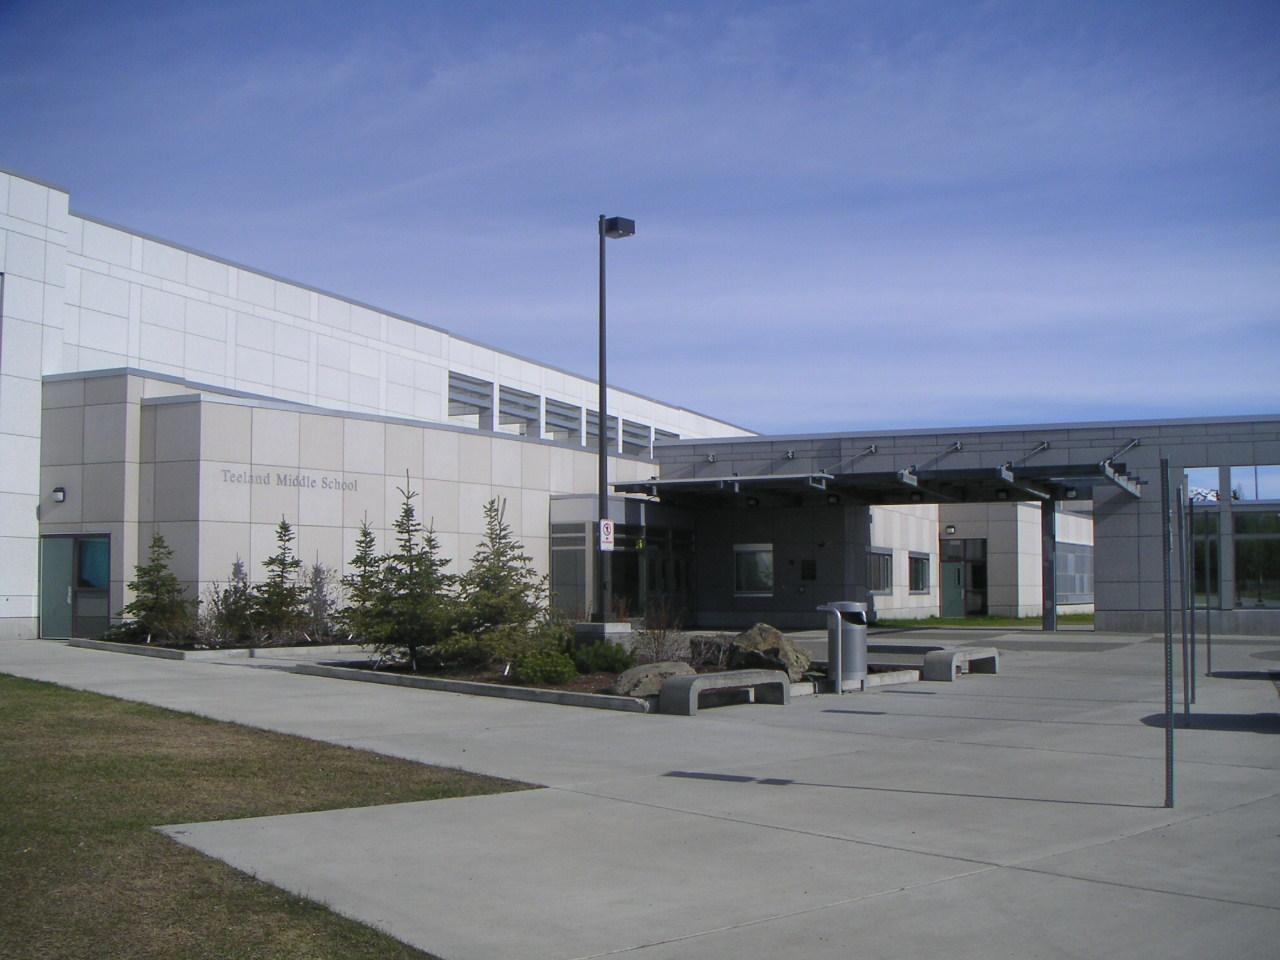 Teeland Middle School Overview